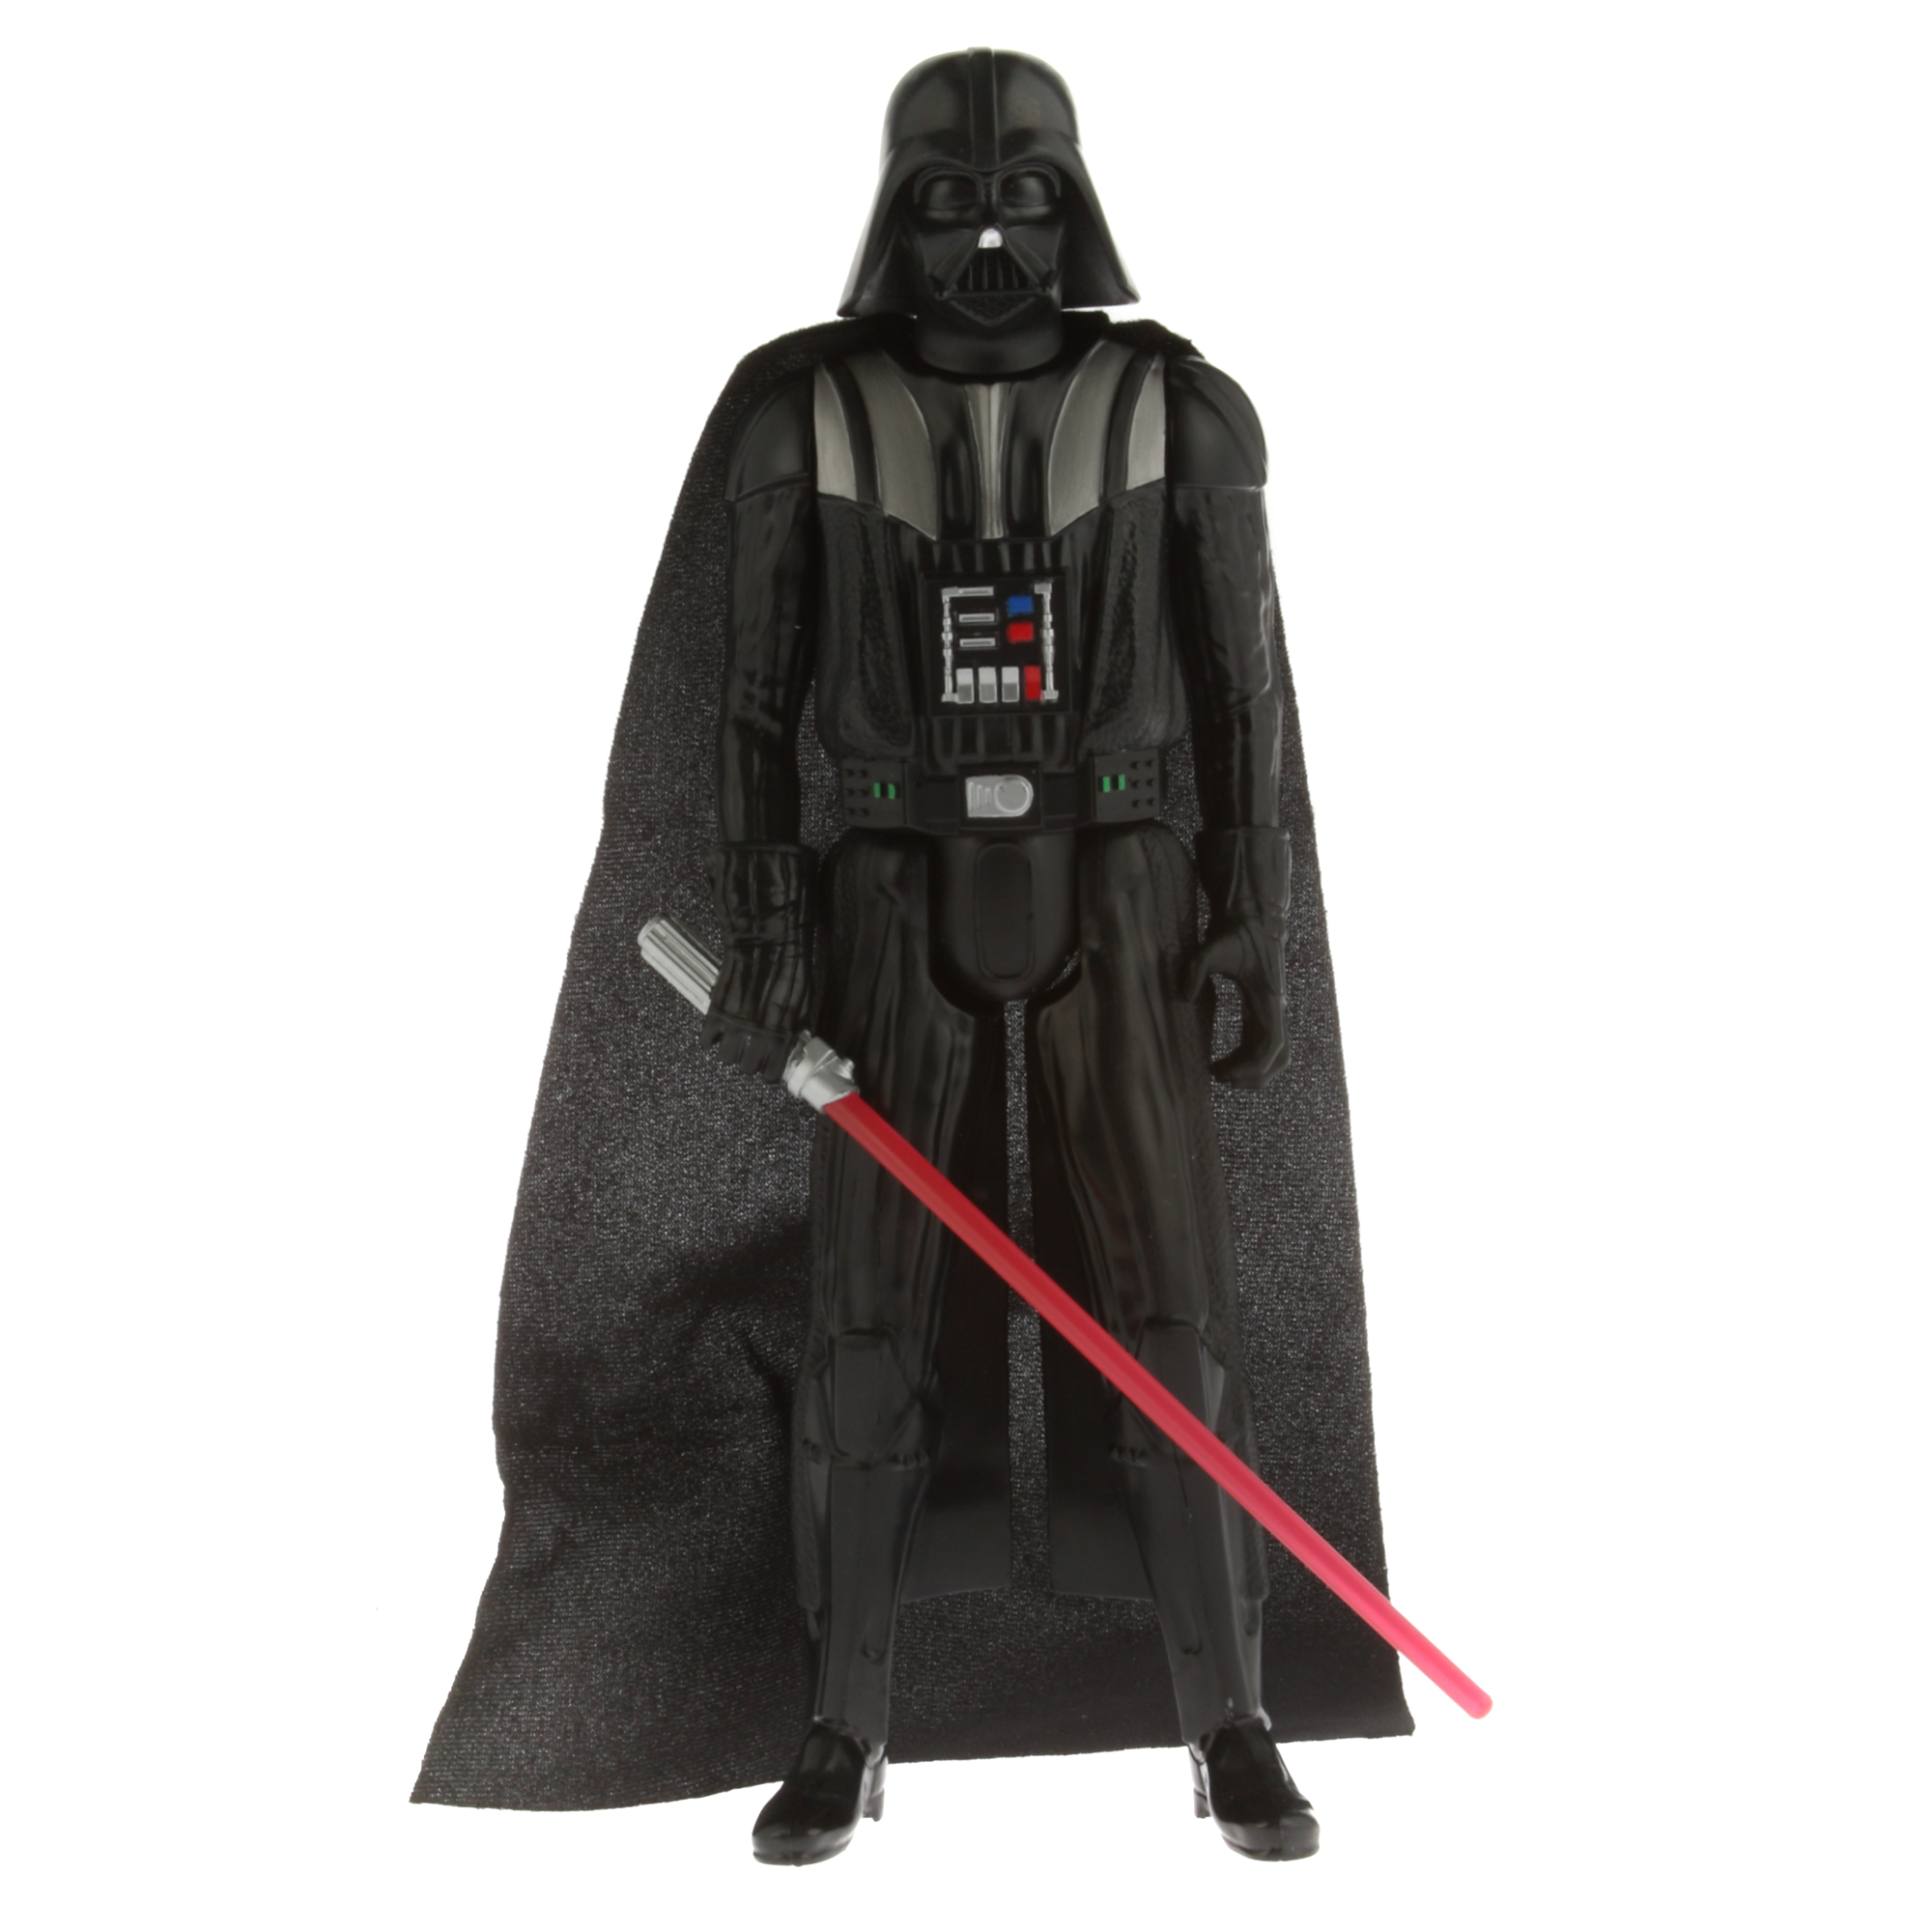 Hasbro Unveils 'Star Wars' Black Series Action Figures at Toy Fair 2013